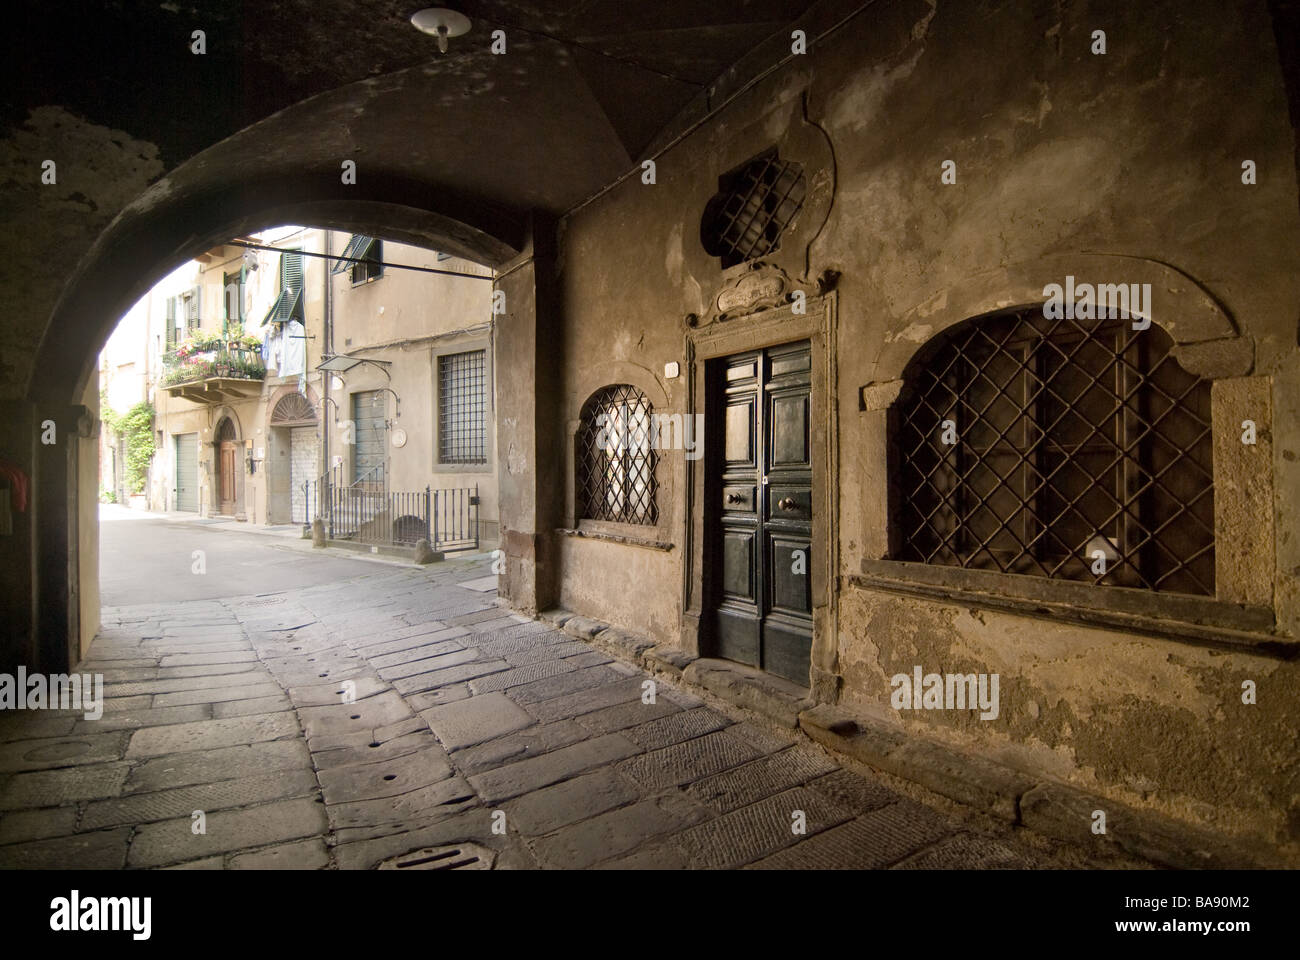 photograph of old cobbled street under archway in Lucca - Stock Image